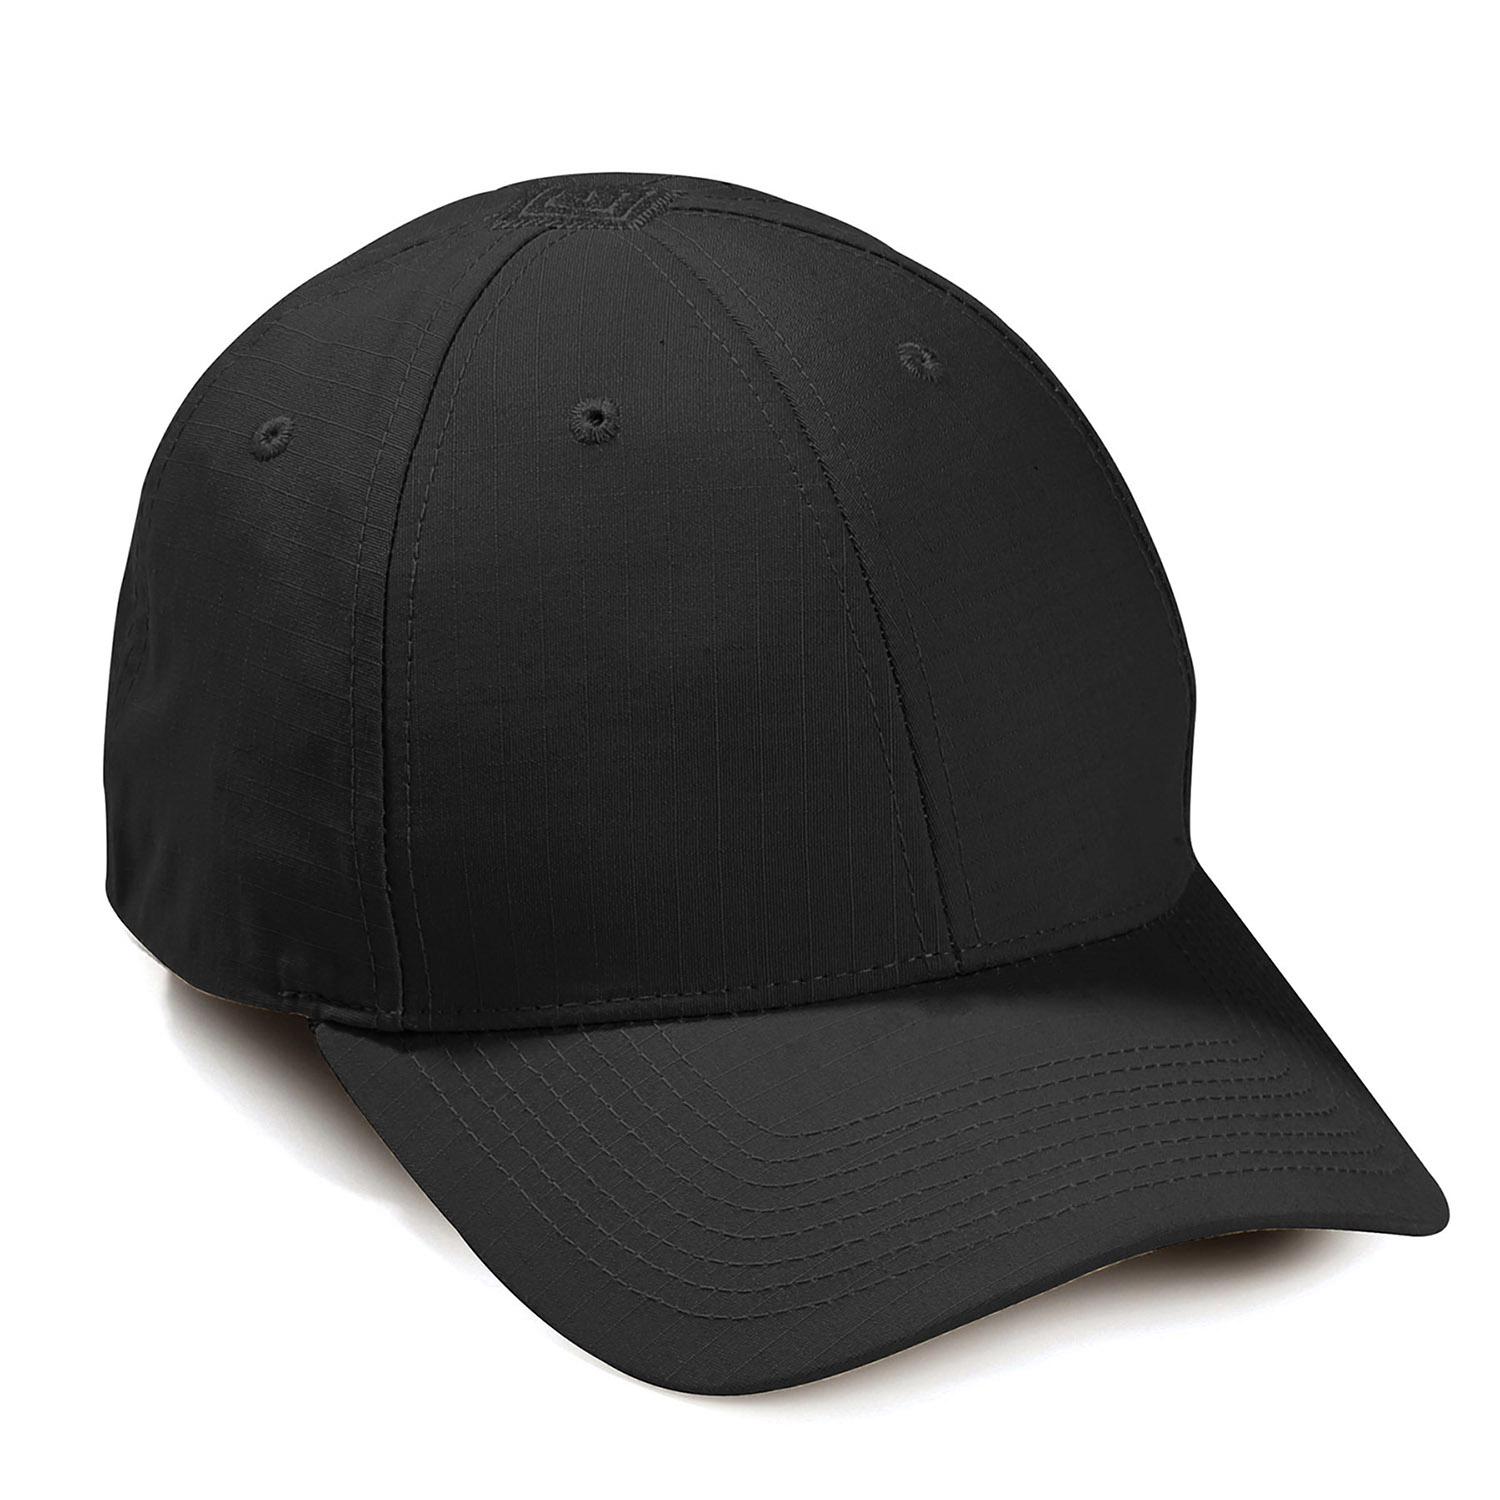 5.11 Tactical Taclite Hat f6795536cb69